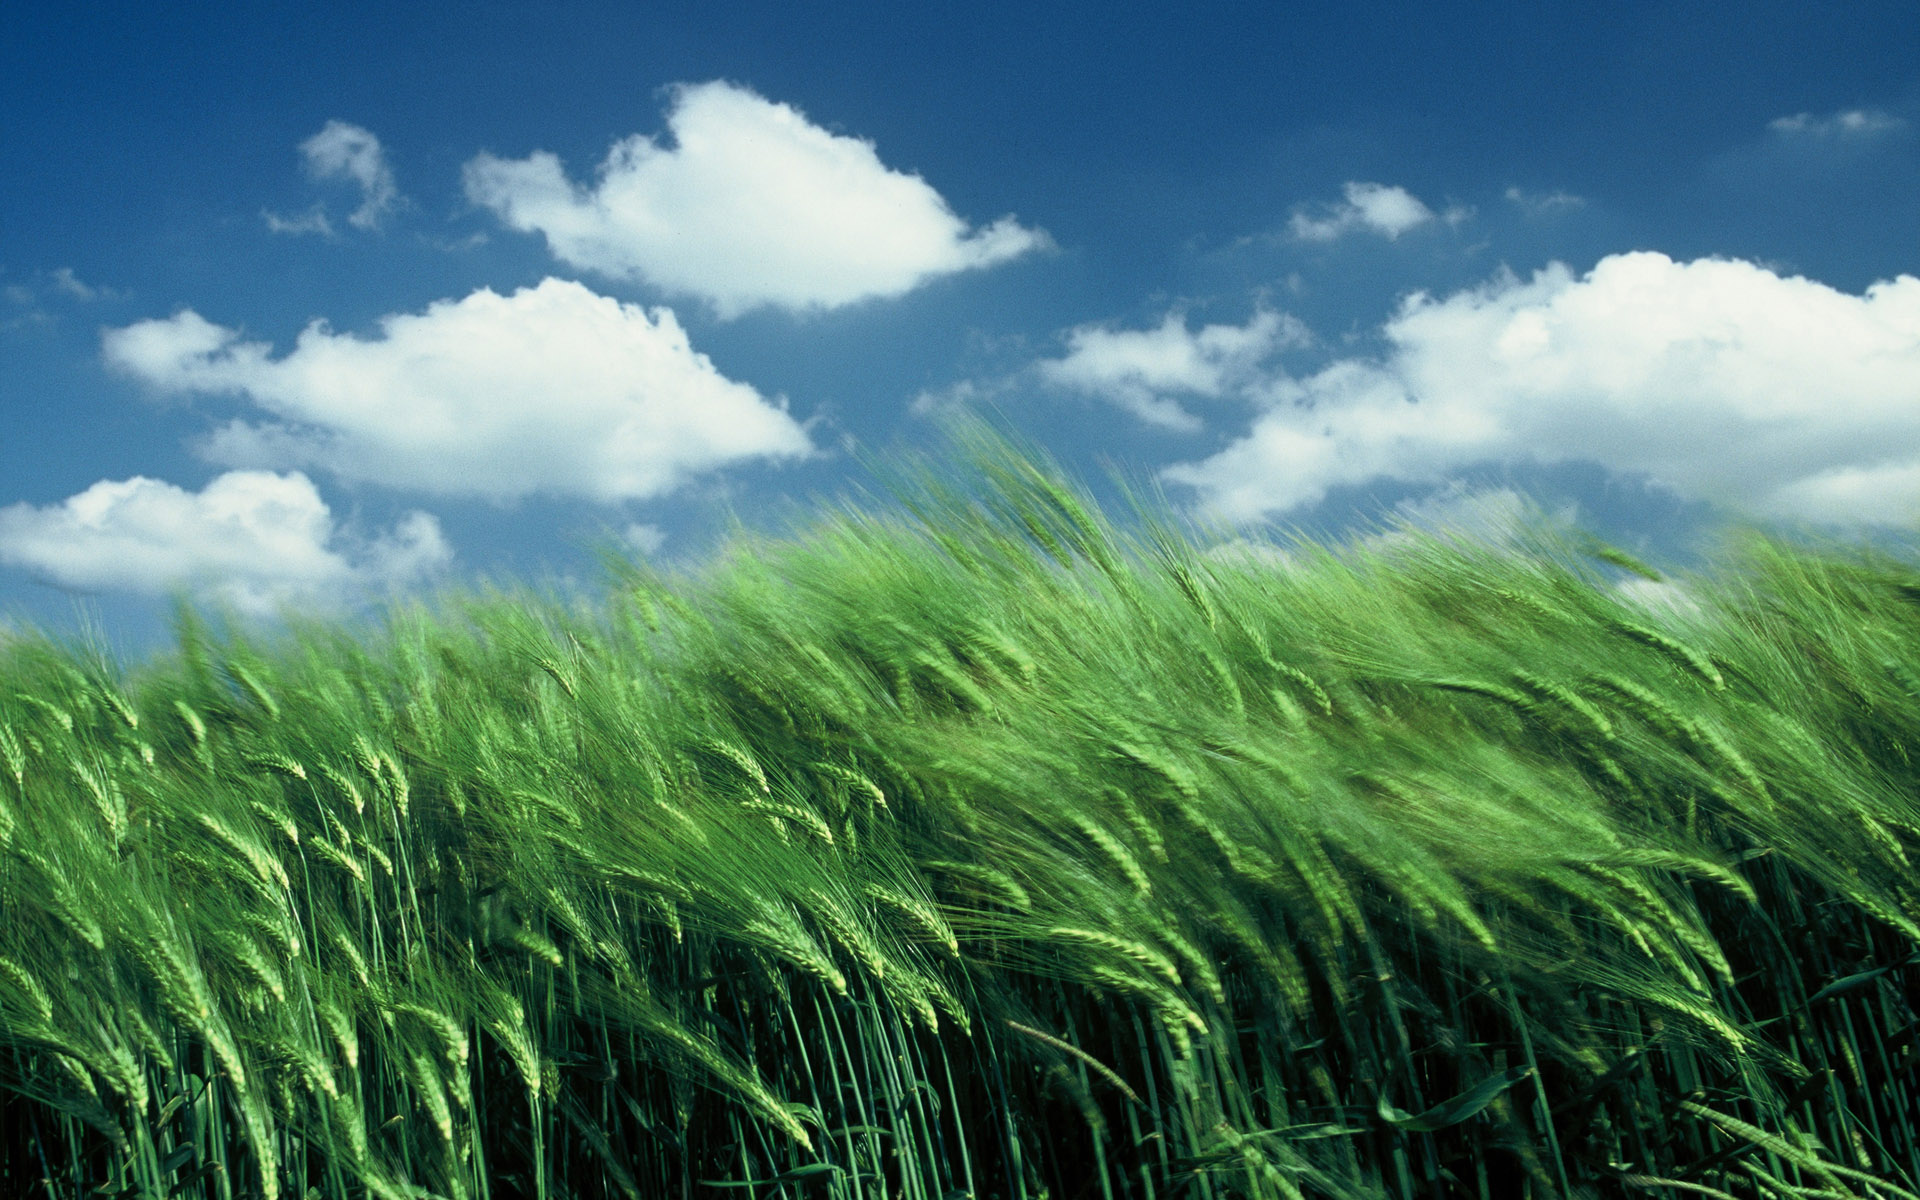 Wallpaper Hp 3d Cornfield Wallpapers Pictures Images